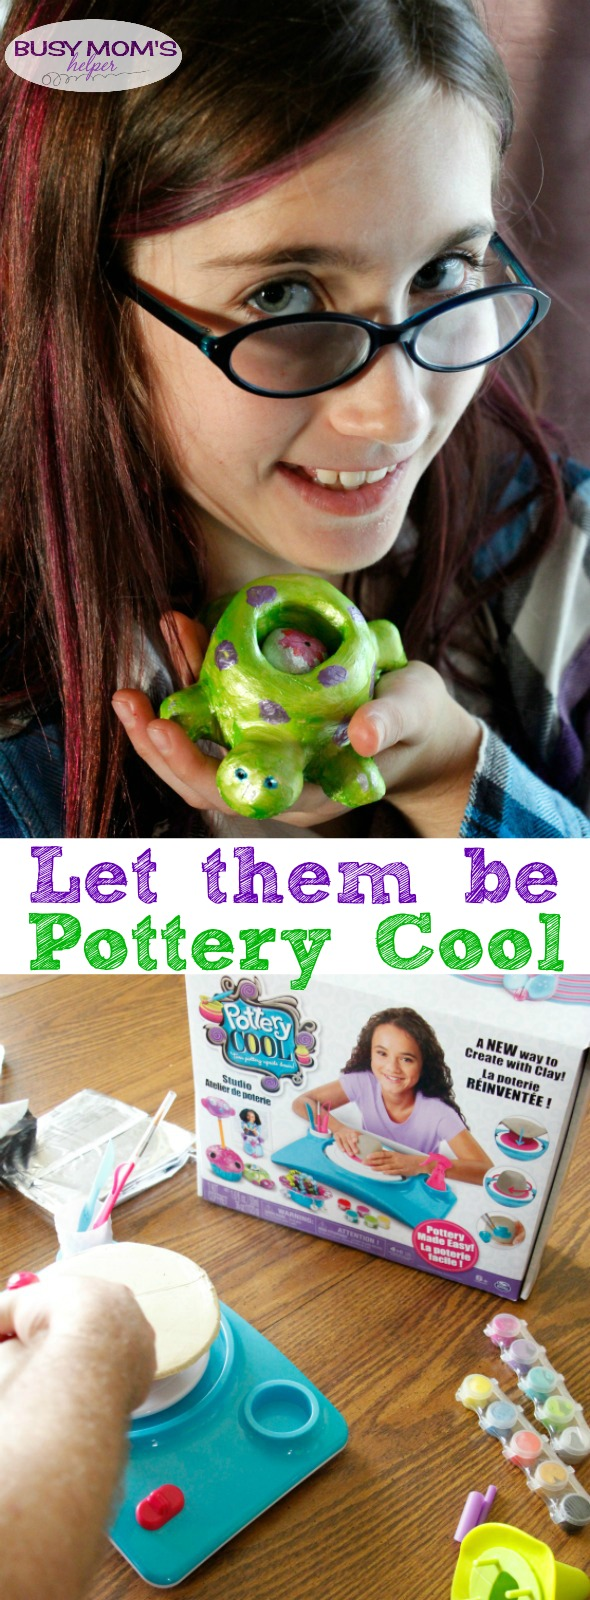 Let them be Pottery Cool / Raising Artistic Kids/ Great Gifts for Artistic Tweens #ad #PotteryCool @spin_master